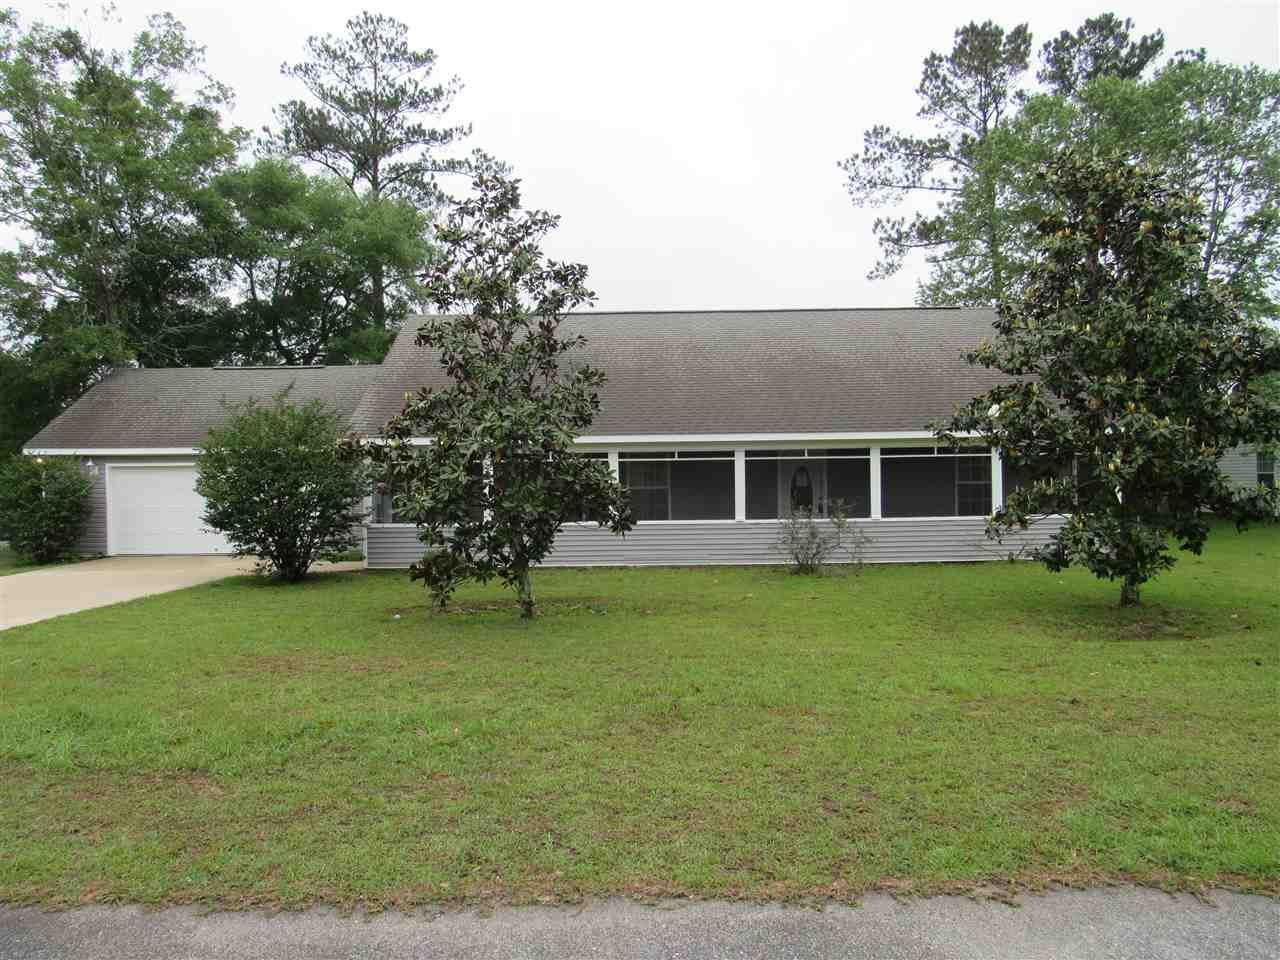 212 Kimberly Lane, Monticello, FL 32344 - MLS#: 318306